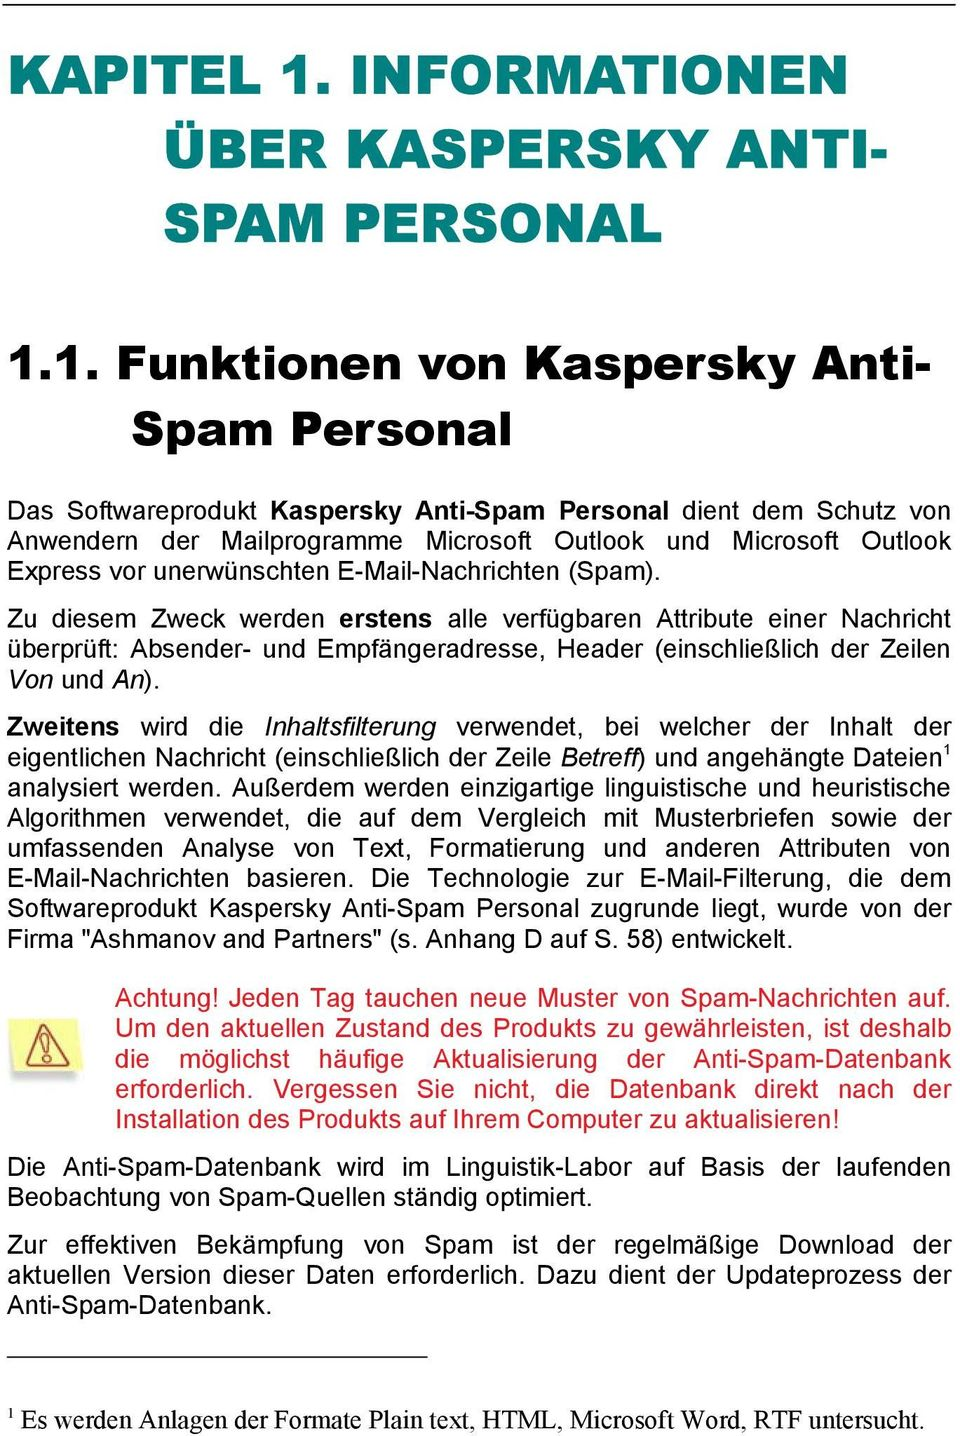 1. Funktionen von Kaspersky Anti- Spam Personal Das Softwareprodukt Kaspersky Anti-Spam Personal dient dem Schutz von Anwendern der Mailprogramme Microsoft Outlook und Microsoft Outlook Express vor